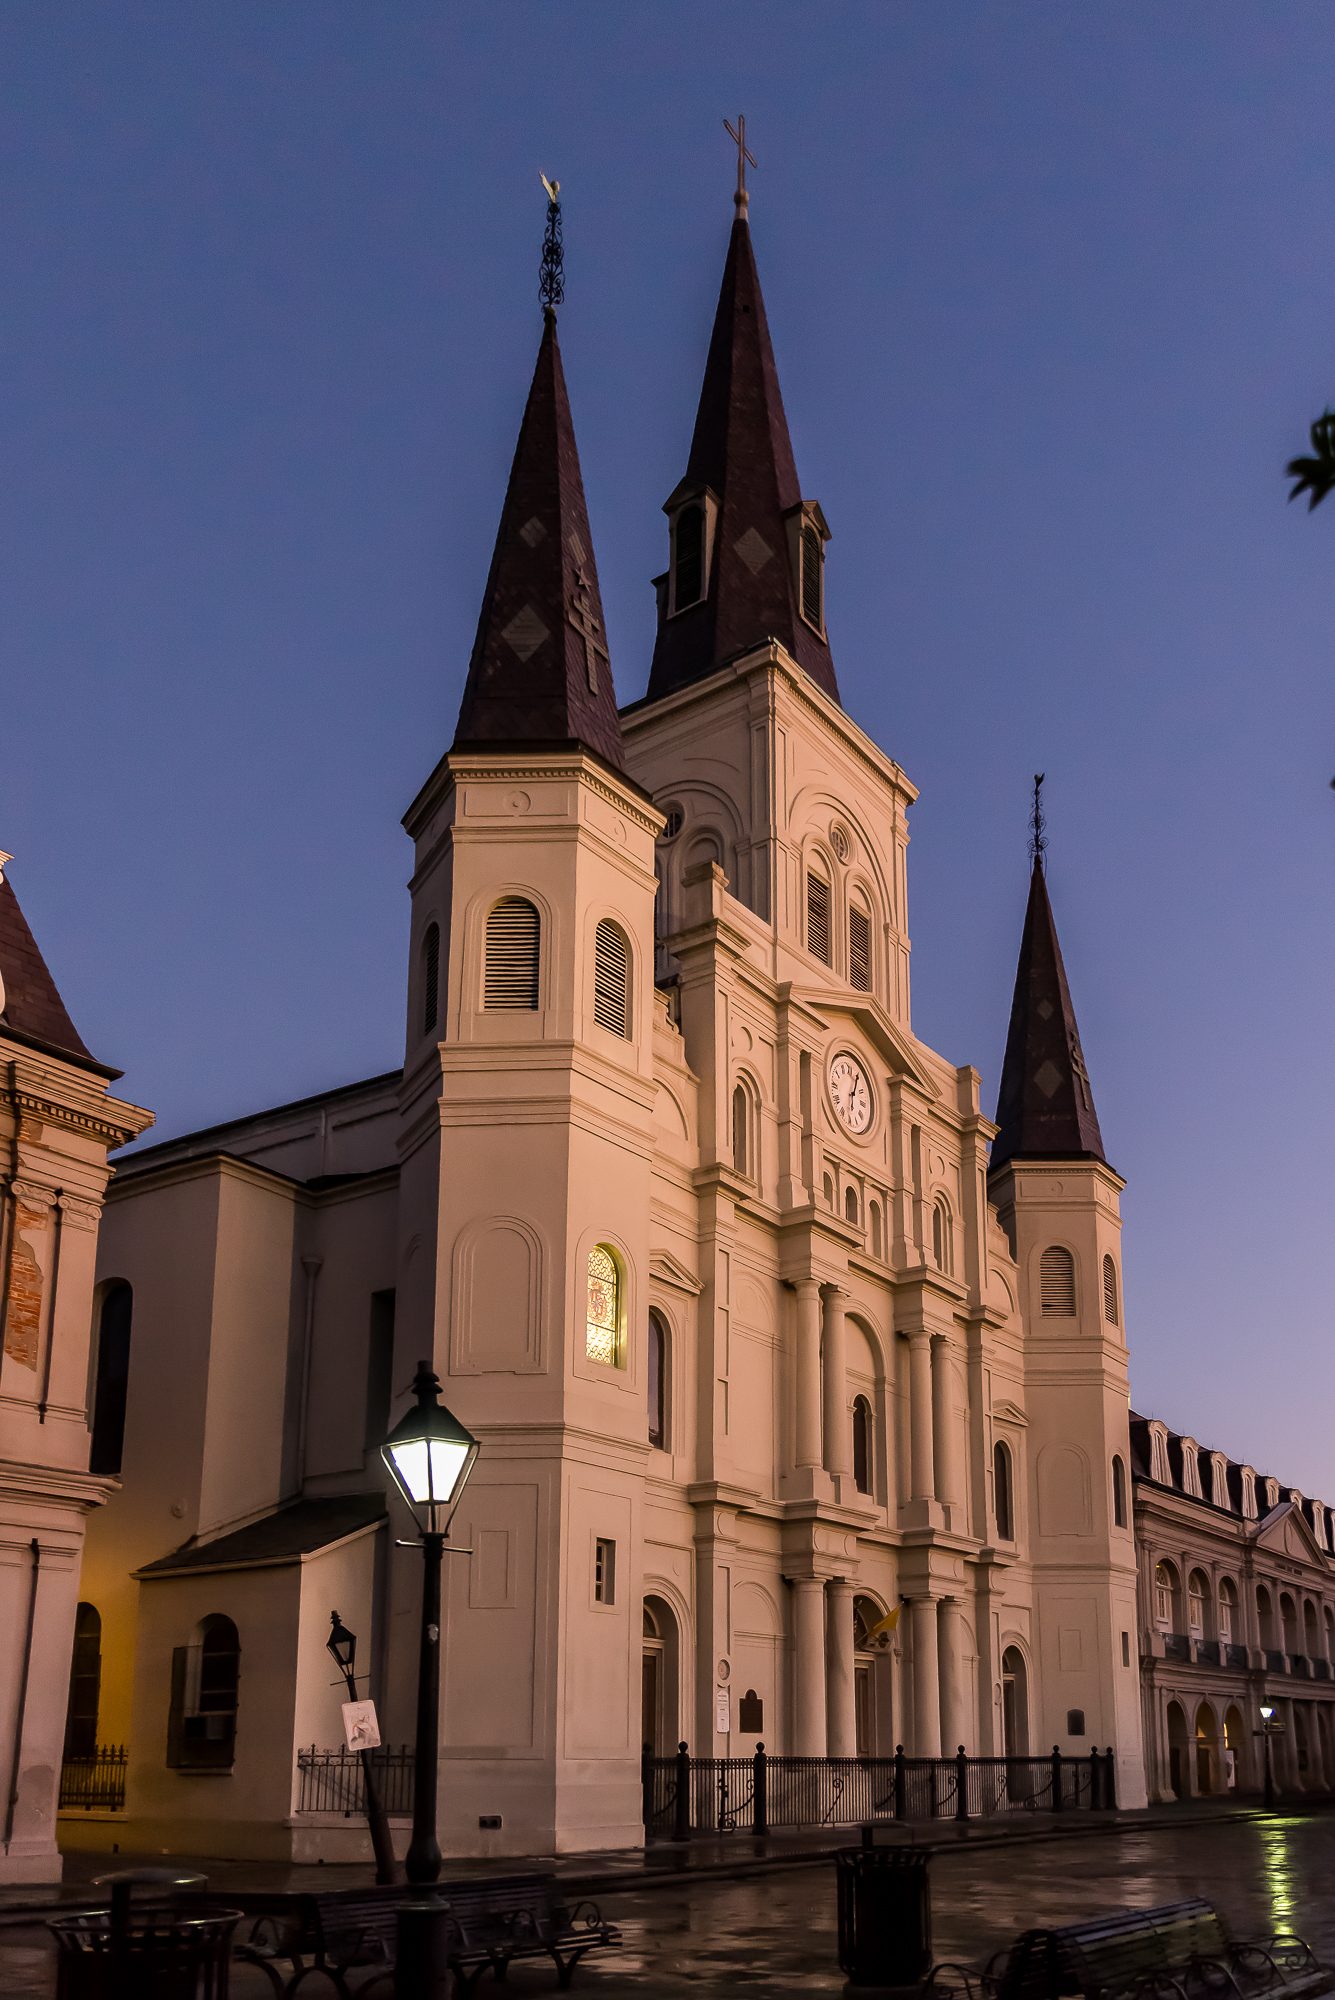 Dawn at the Saint Louis Cathedral